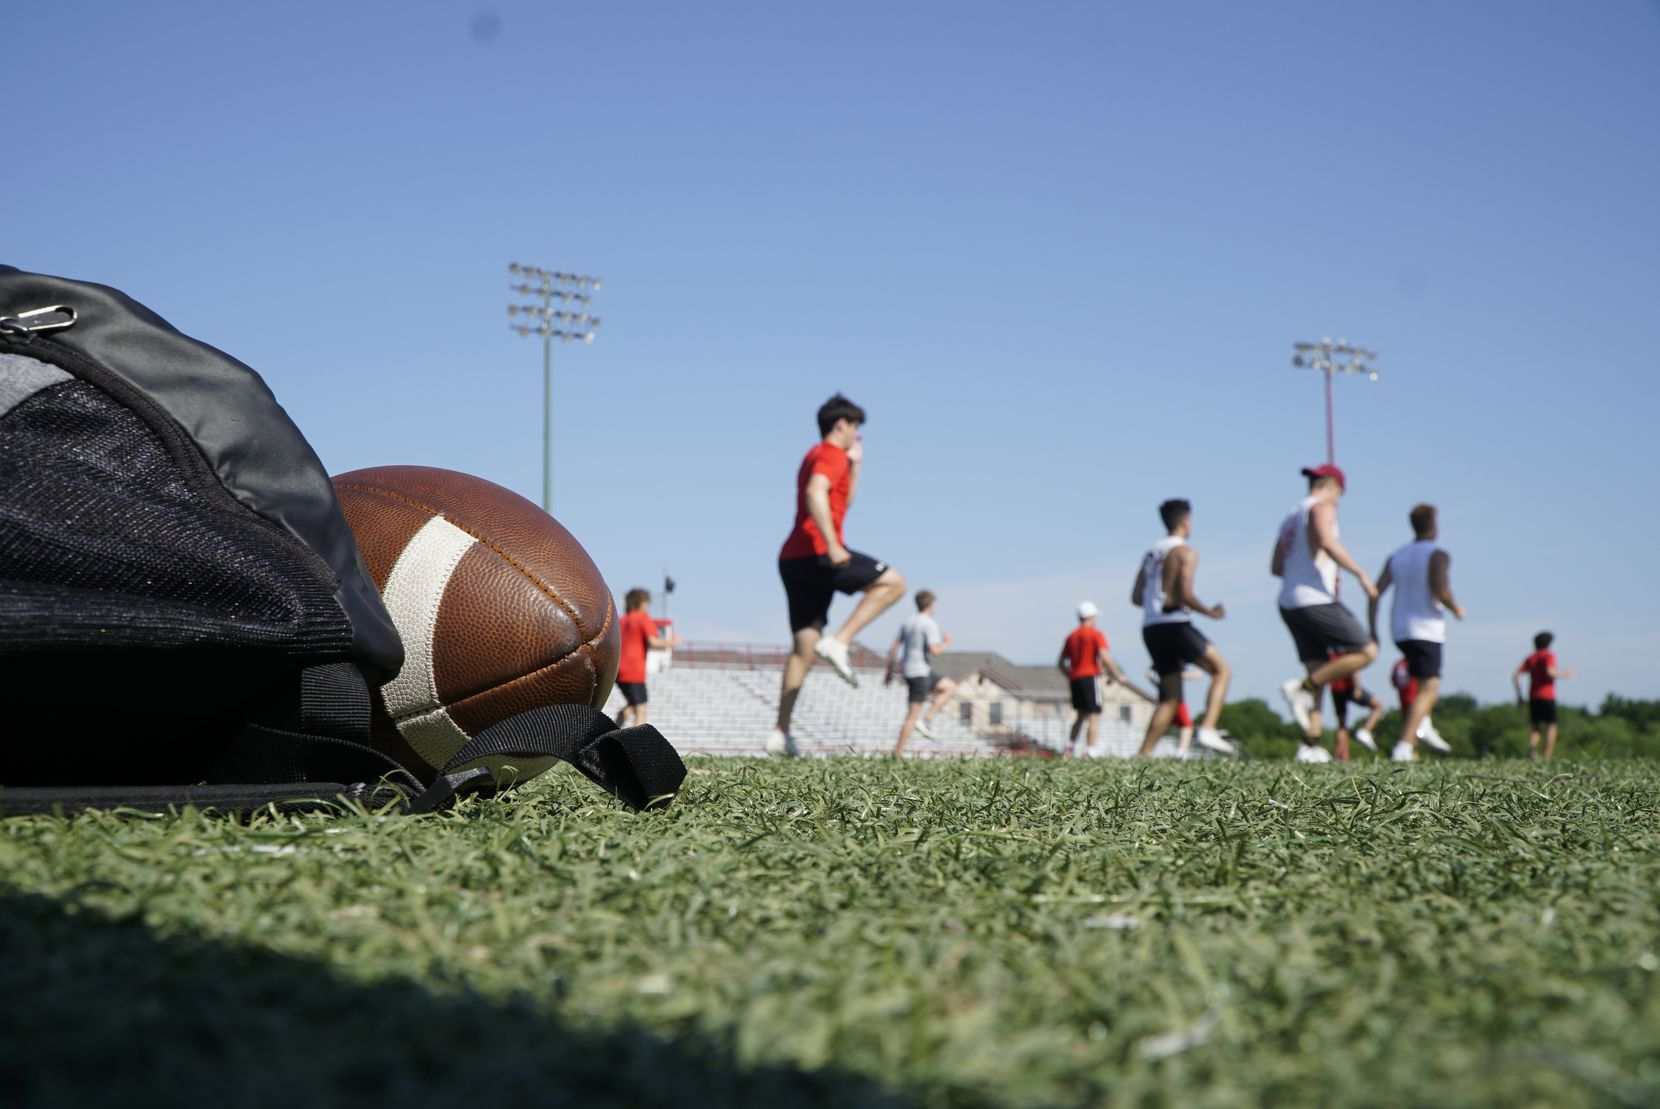 Workouts started for athletes at Fort Worth Christian School in North Richland Hills, Texas on Thursday, June 4, 2020. The athletes participated in several drills on field as well as weight training.